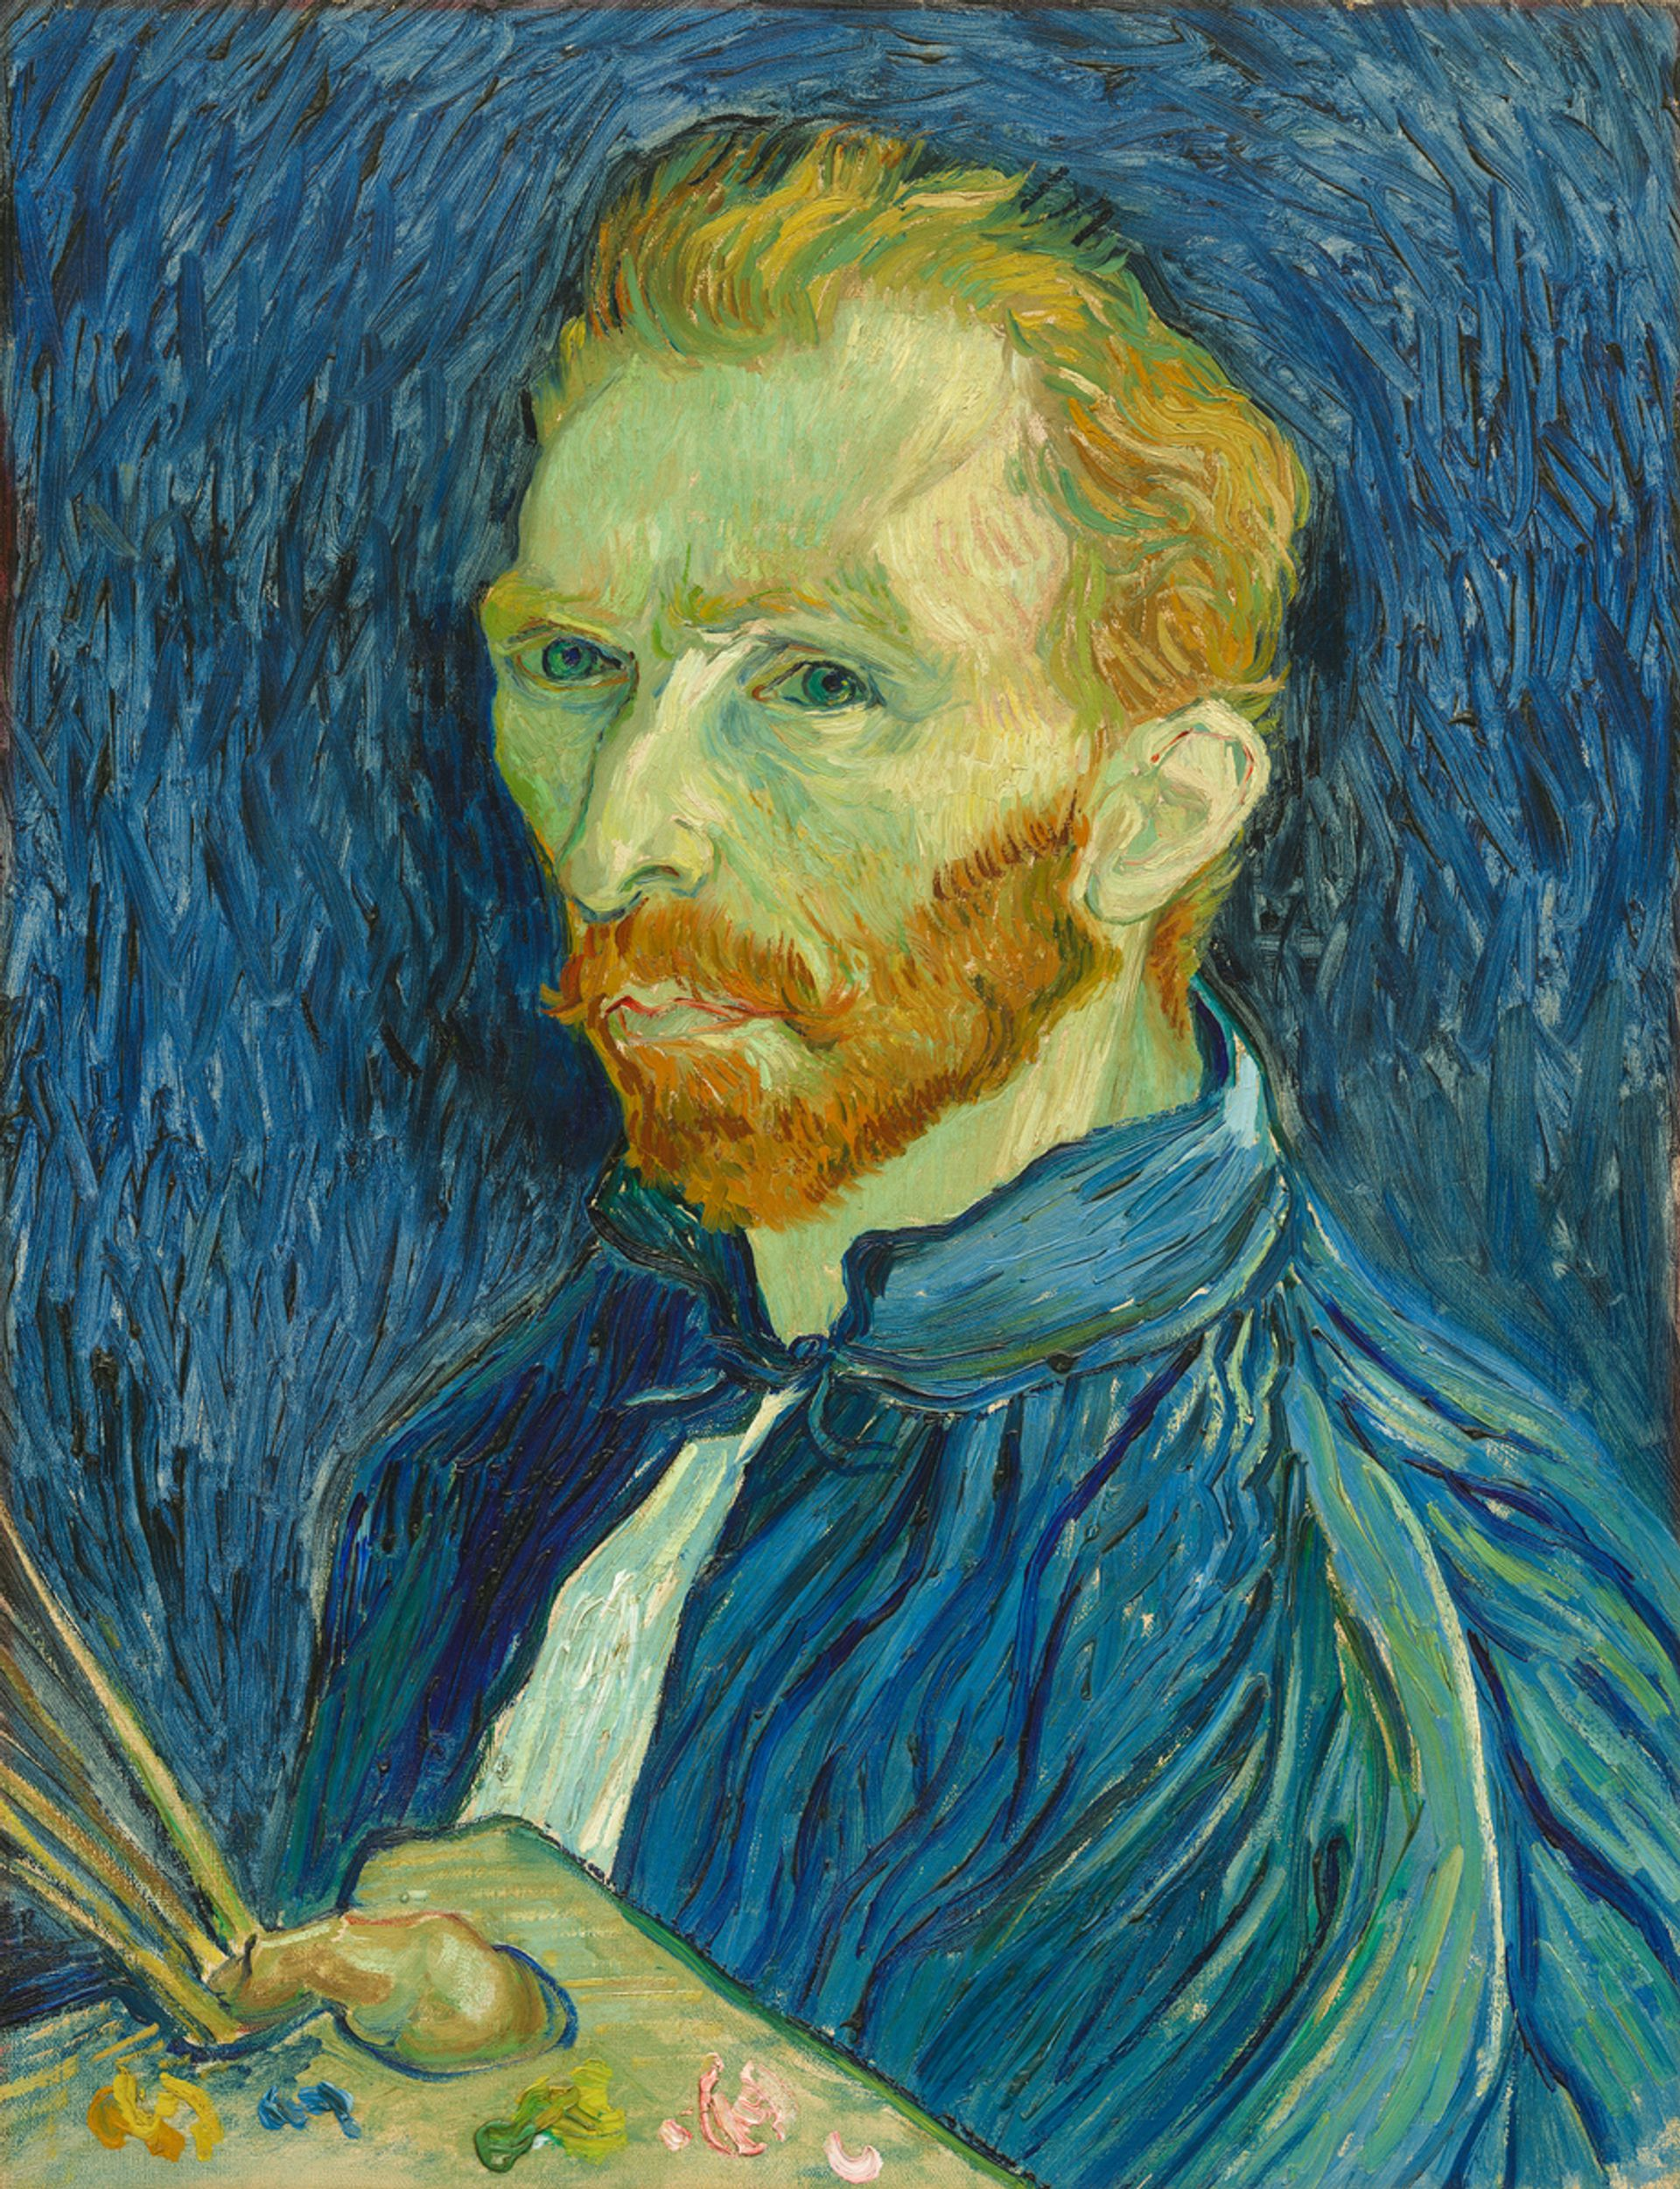 Vincent van Gogh's Self-portrait (1889), painted in the asylum Courtesy of the National Gallery of Art, Washington, DC